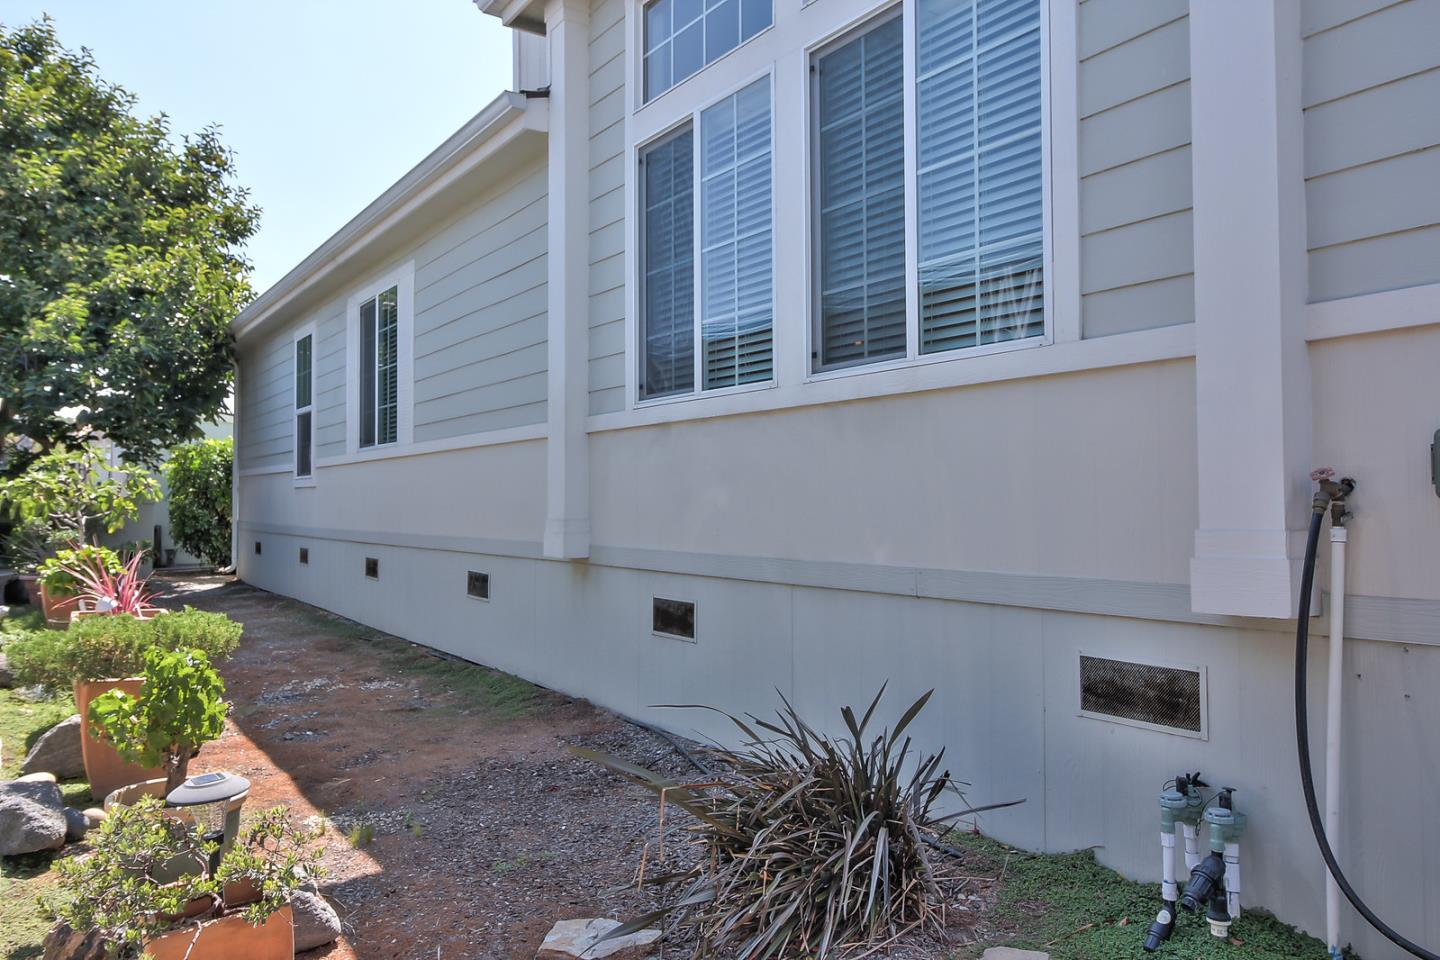 Additional photo for property listing at 524 Millpond Drive  San Jose, Kalifornien 95125 Vereinigte Staaten